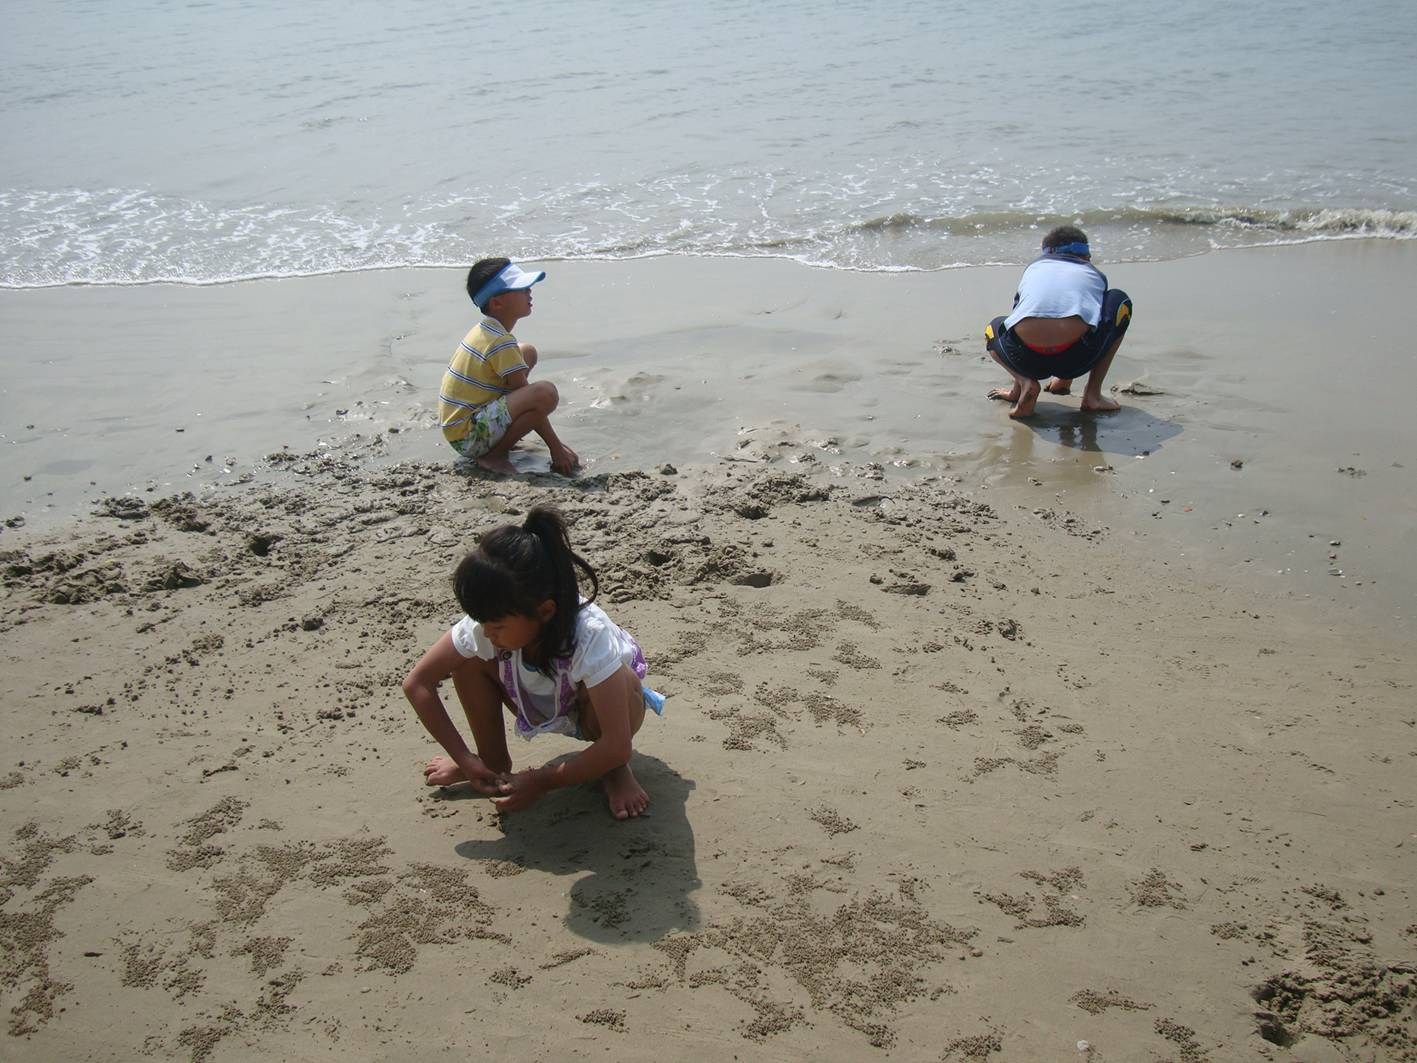 Picture:  Kids chase tiny crabs on the beach of Sanya, Hainan Island, China